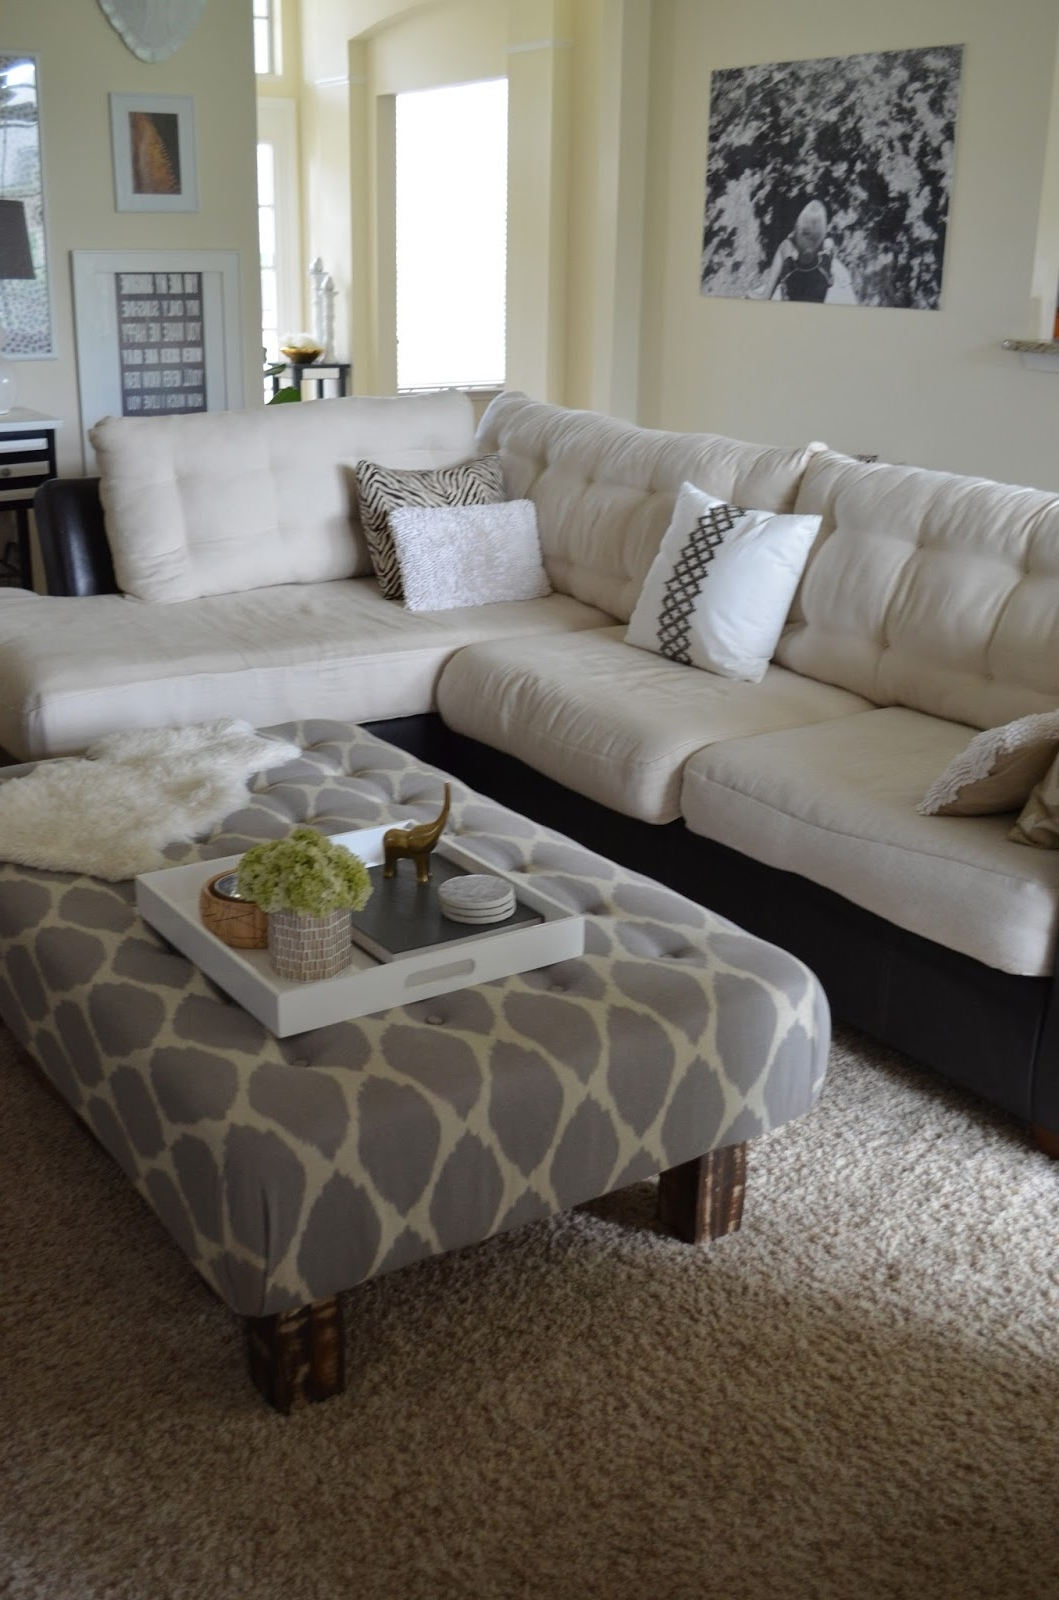 Furniture : Craigslist Sofa La Ethan Allen Futon Sofa Tufted Pertaining To Newest Kamloops Sectional Sofas (View 8 of 20)